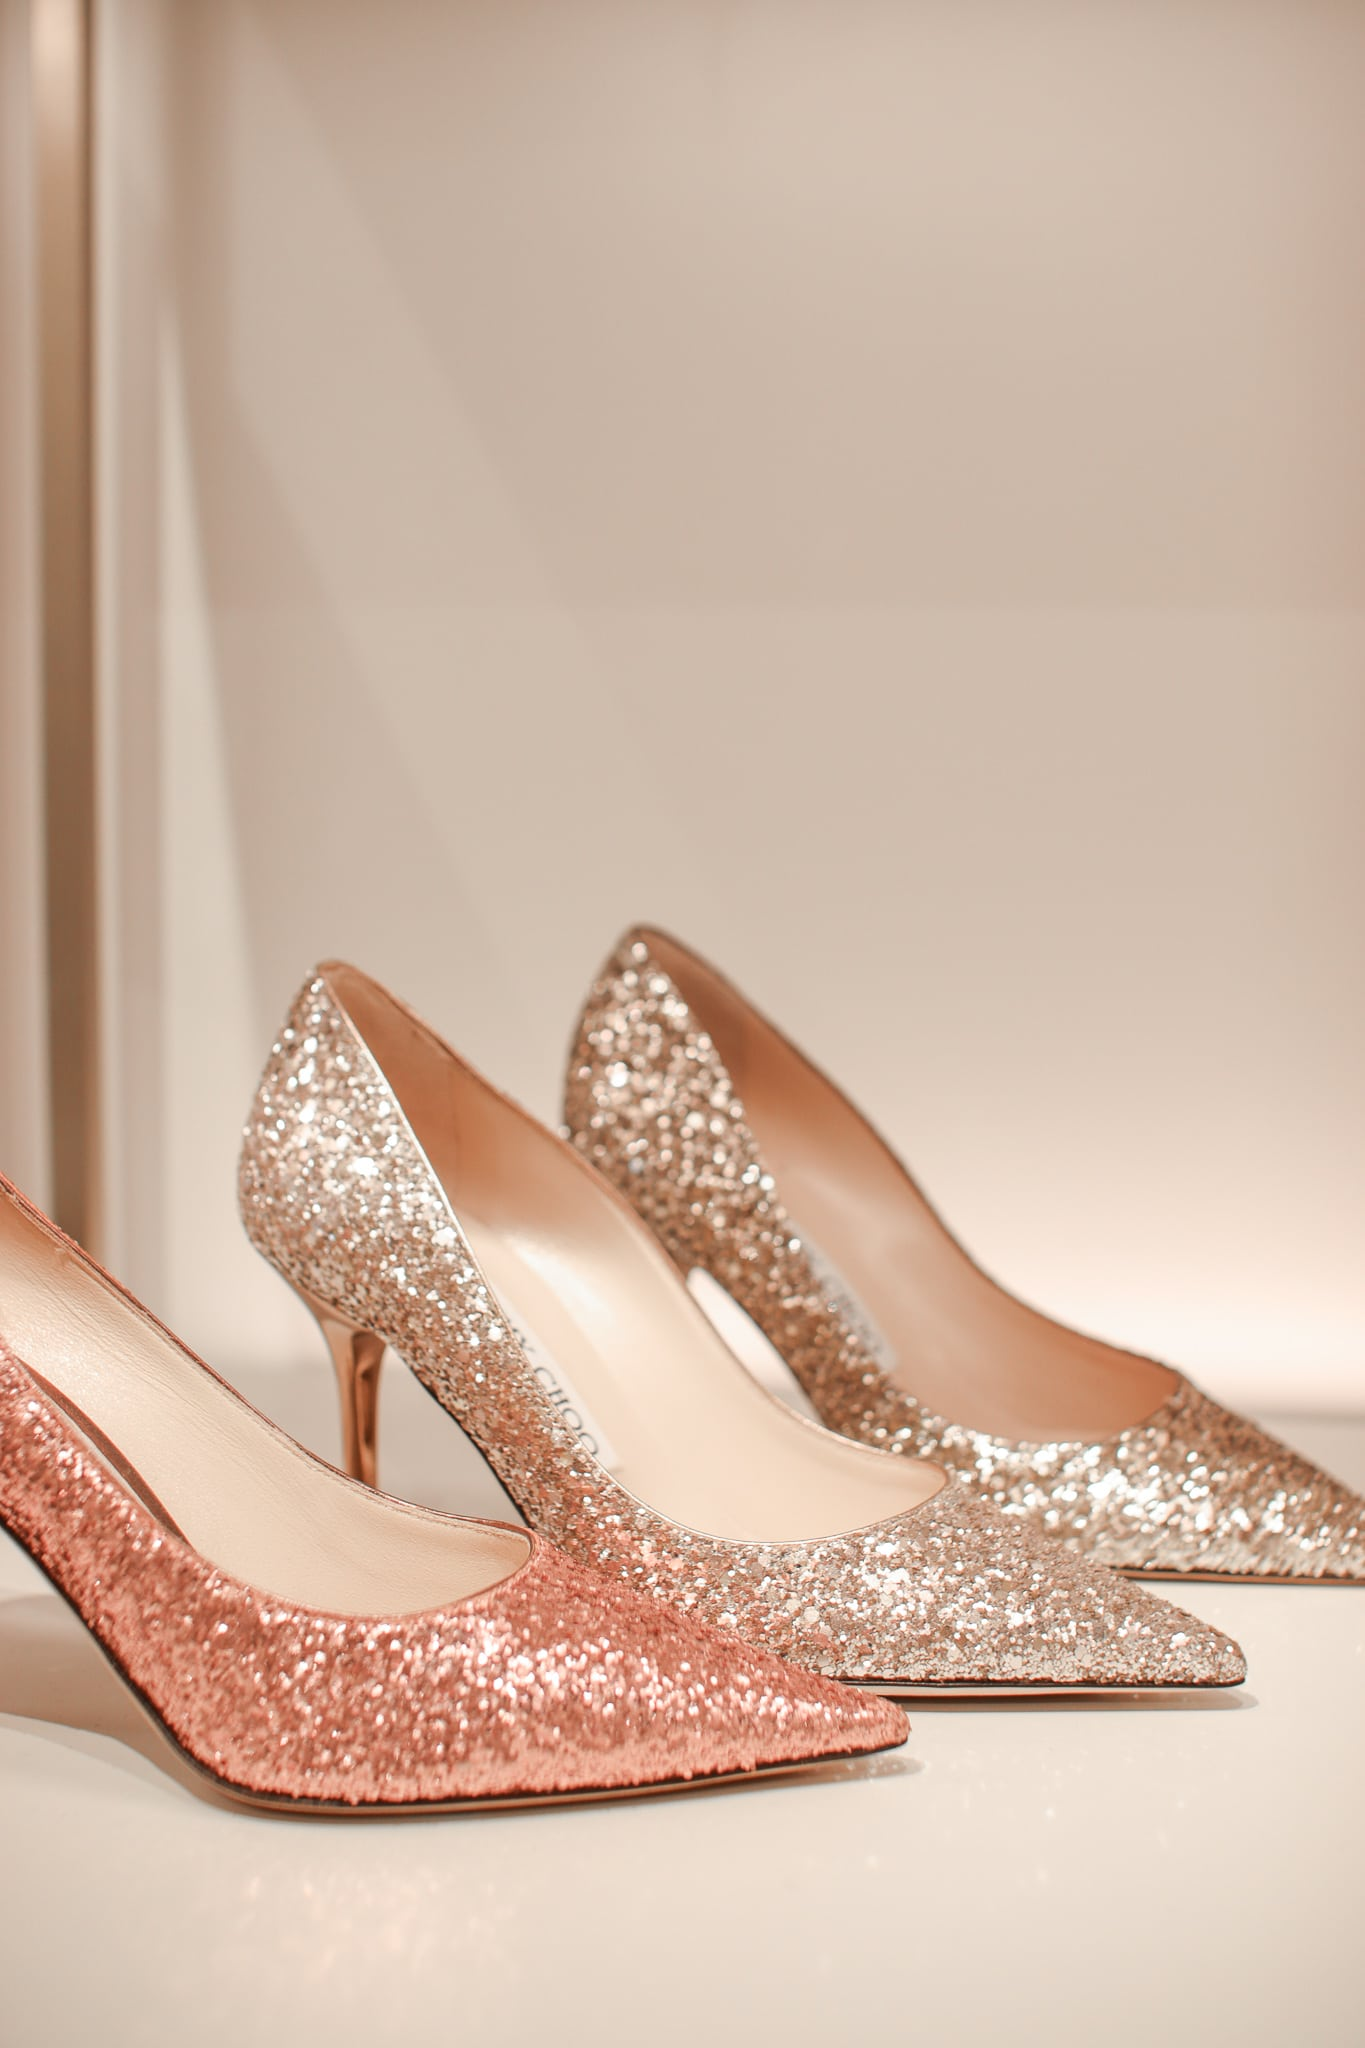 Chaussures luxe mariage